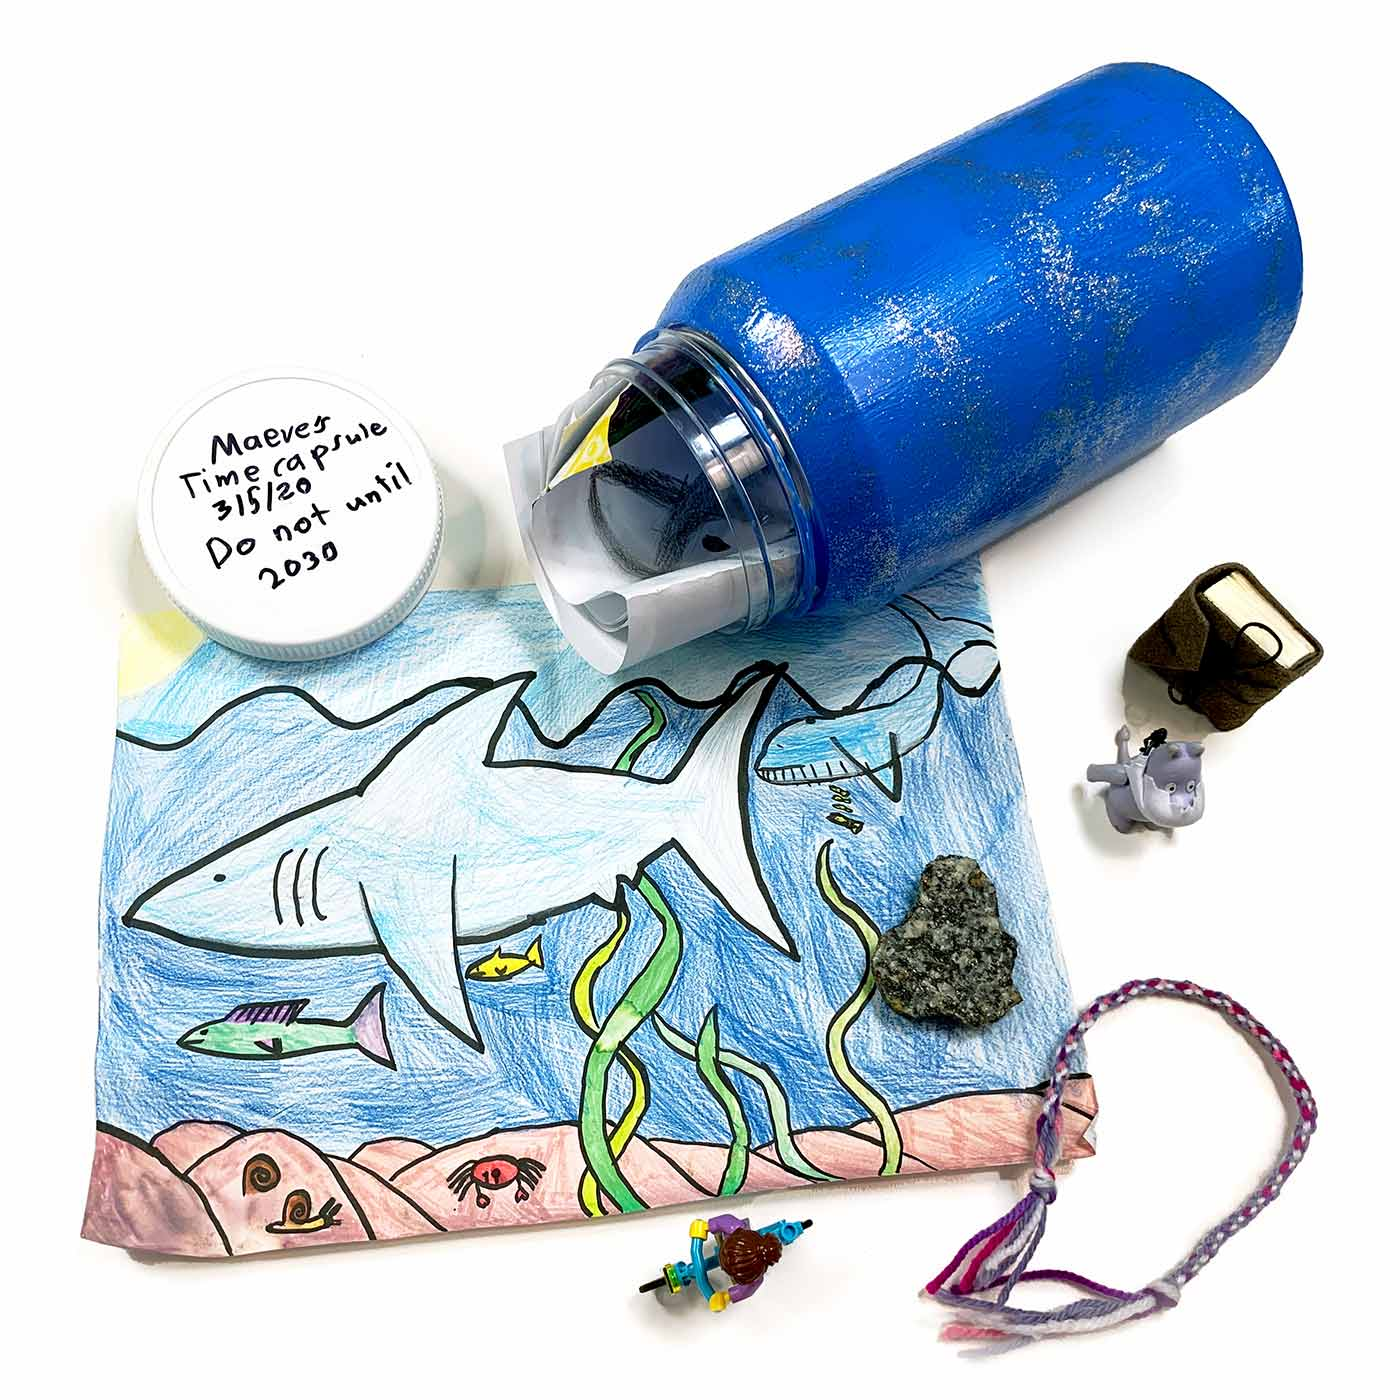 "Time capsule featuring a bottle with folded drawings on paper inside. The bottle is sitting next to other objects including a miniature diary, a Lego person on a bike, and a rock. These objects are sitting on top of a drawing featuring an underwater ocean scene. On top of the bottle's cap is written in black marker: ""Maeves Time capsule. 3/5/20. Do not until 2030"". - click to view larger image"